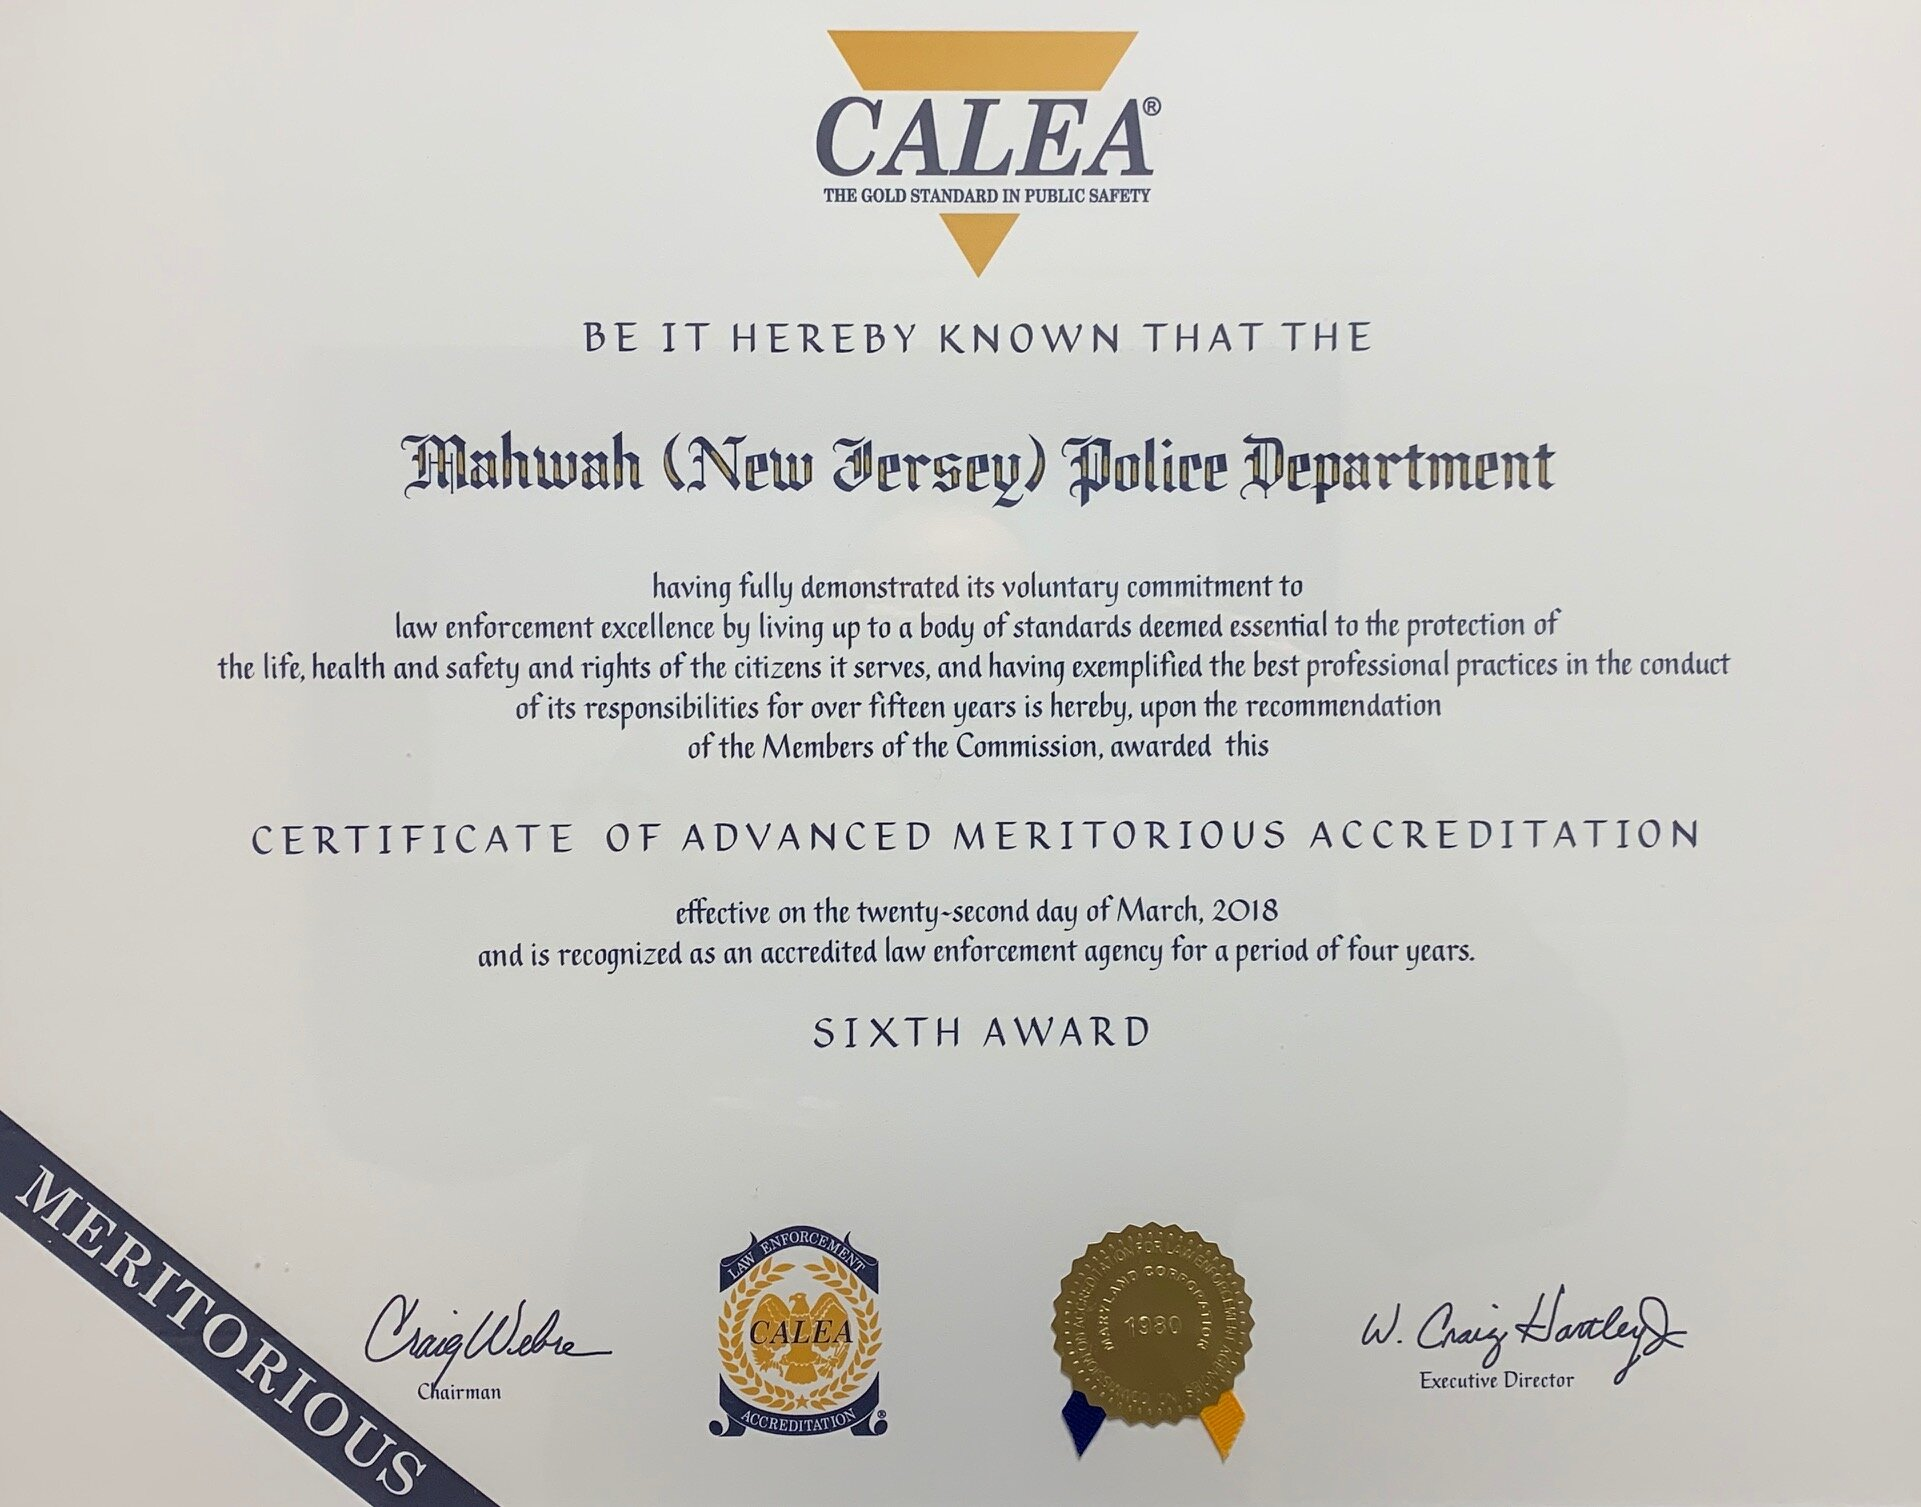 Commission on Accreditation for Law Enforcement Agencies mahwah nj certificate